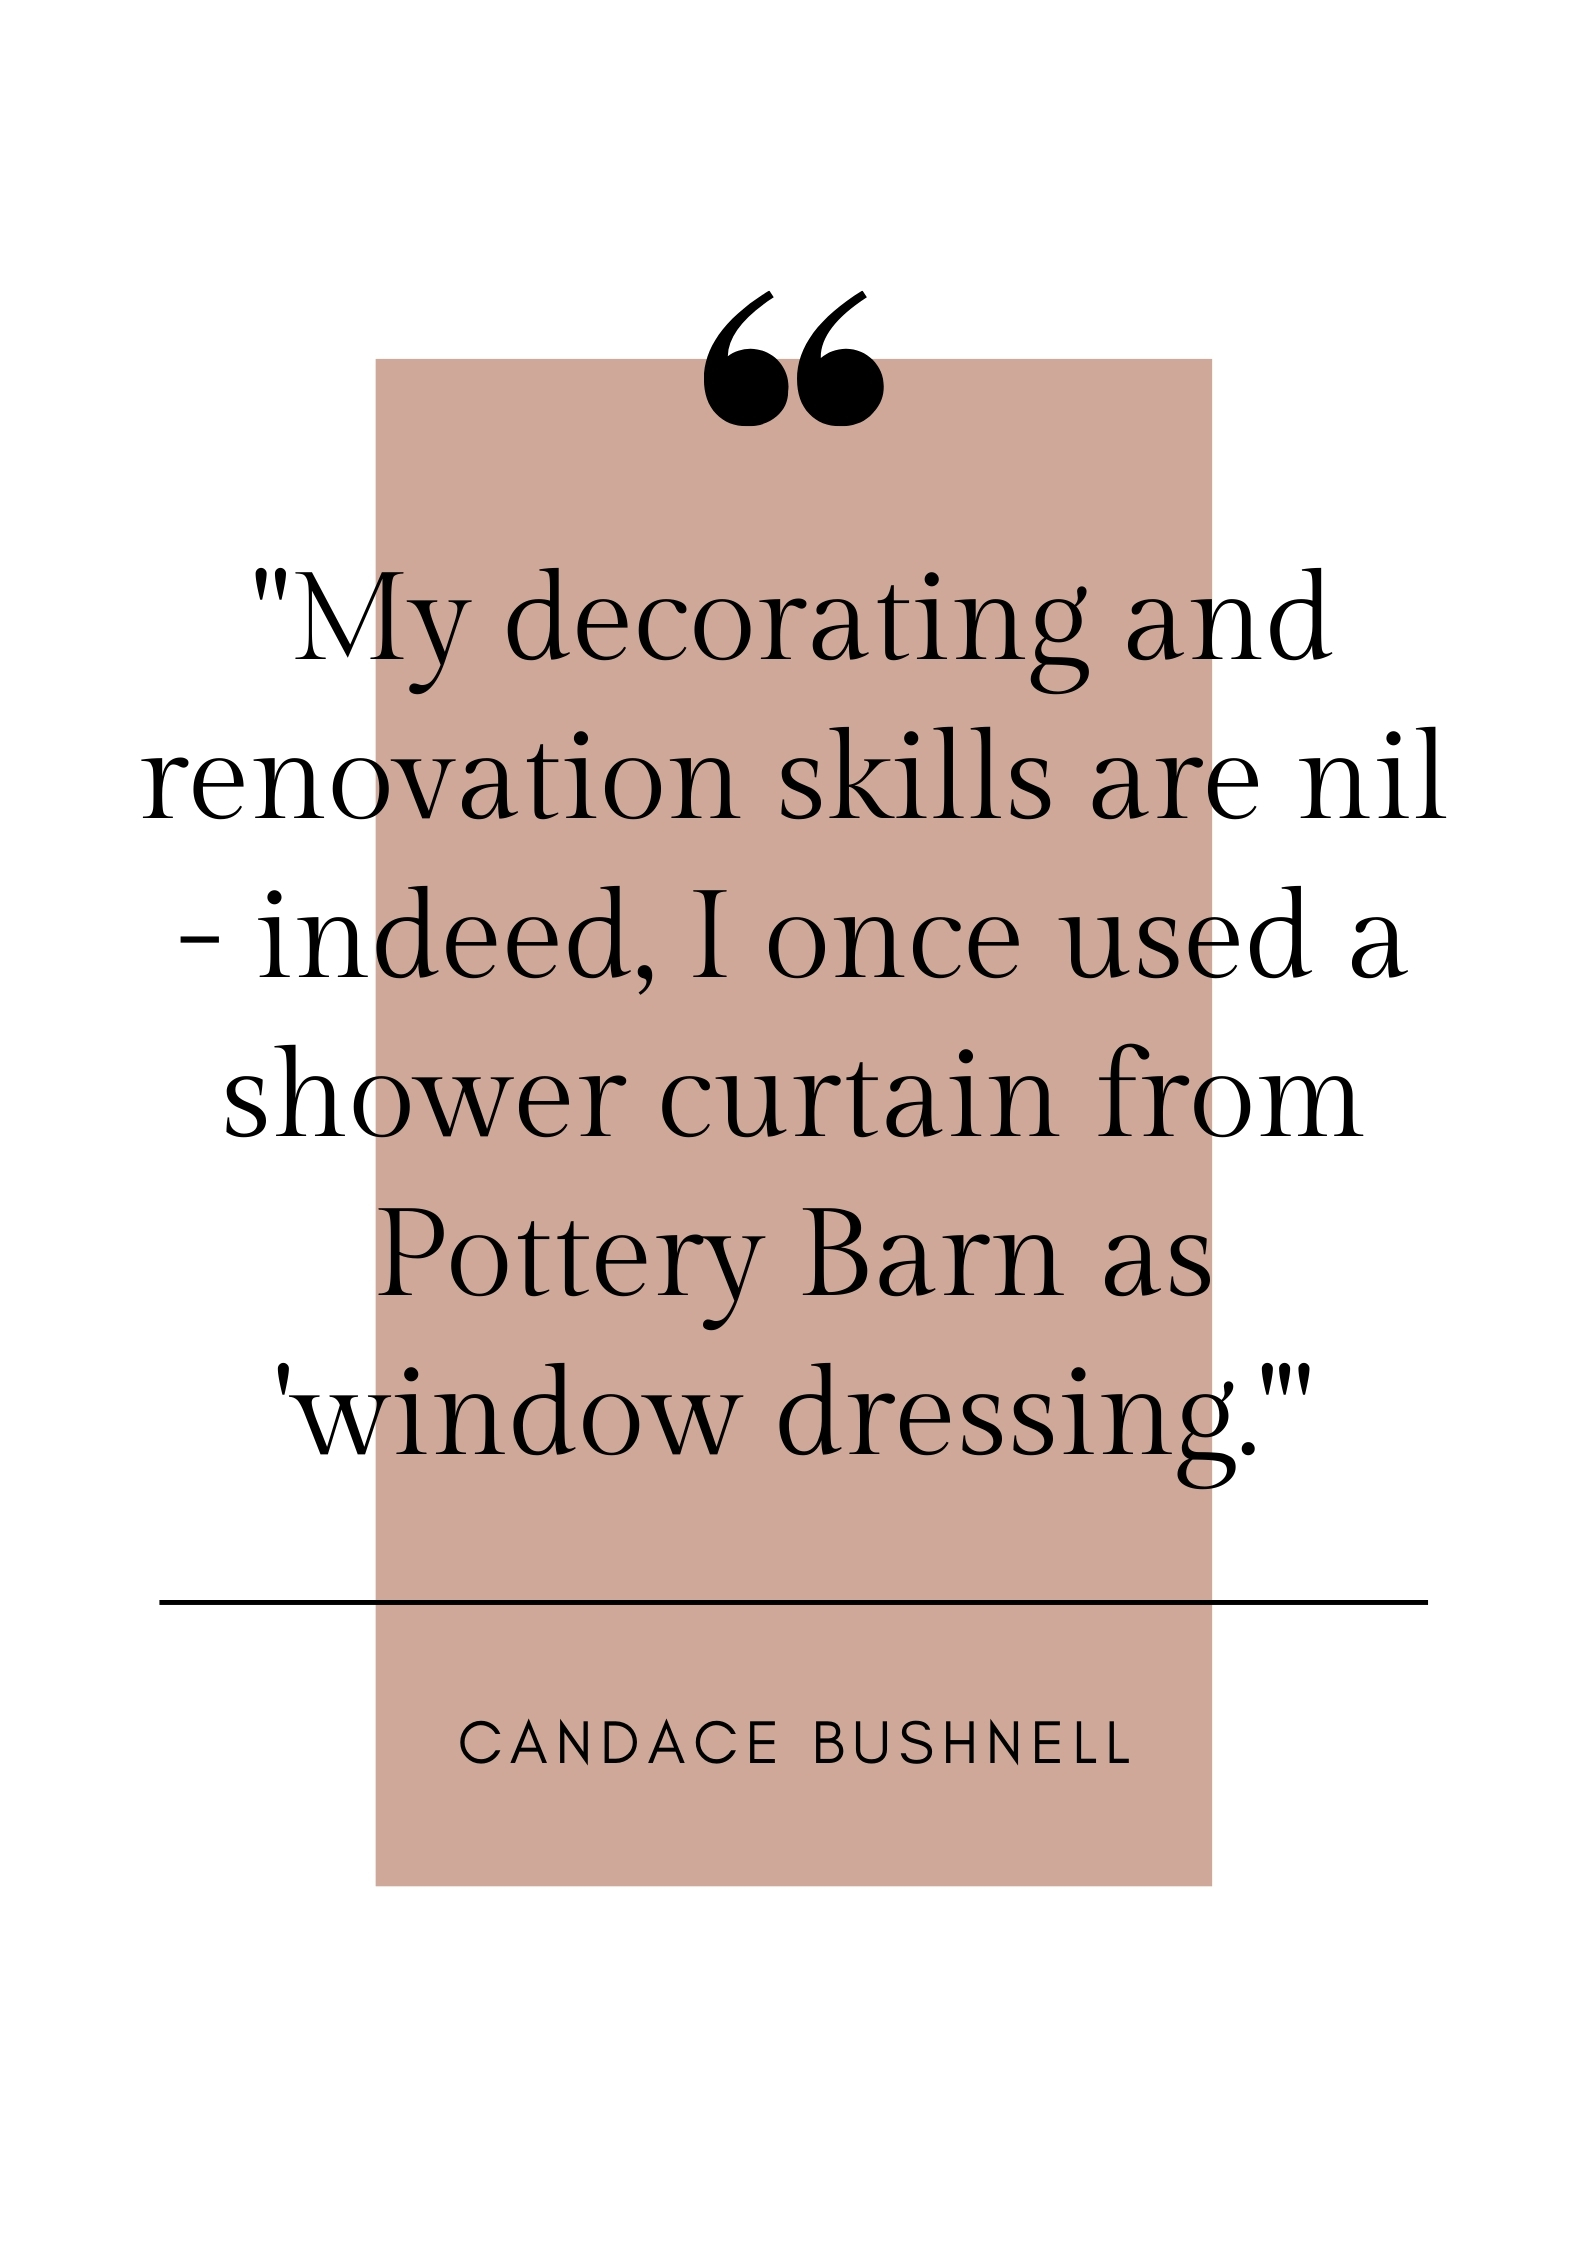 candace Bushnell quote